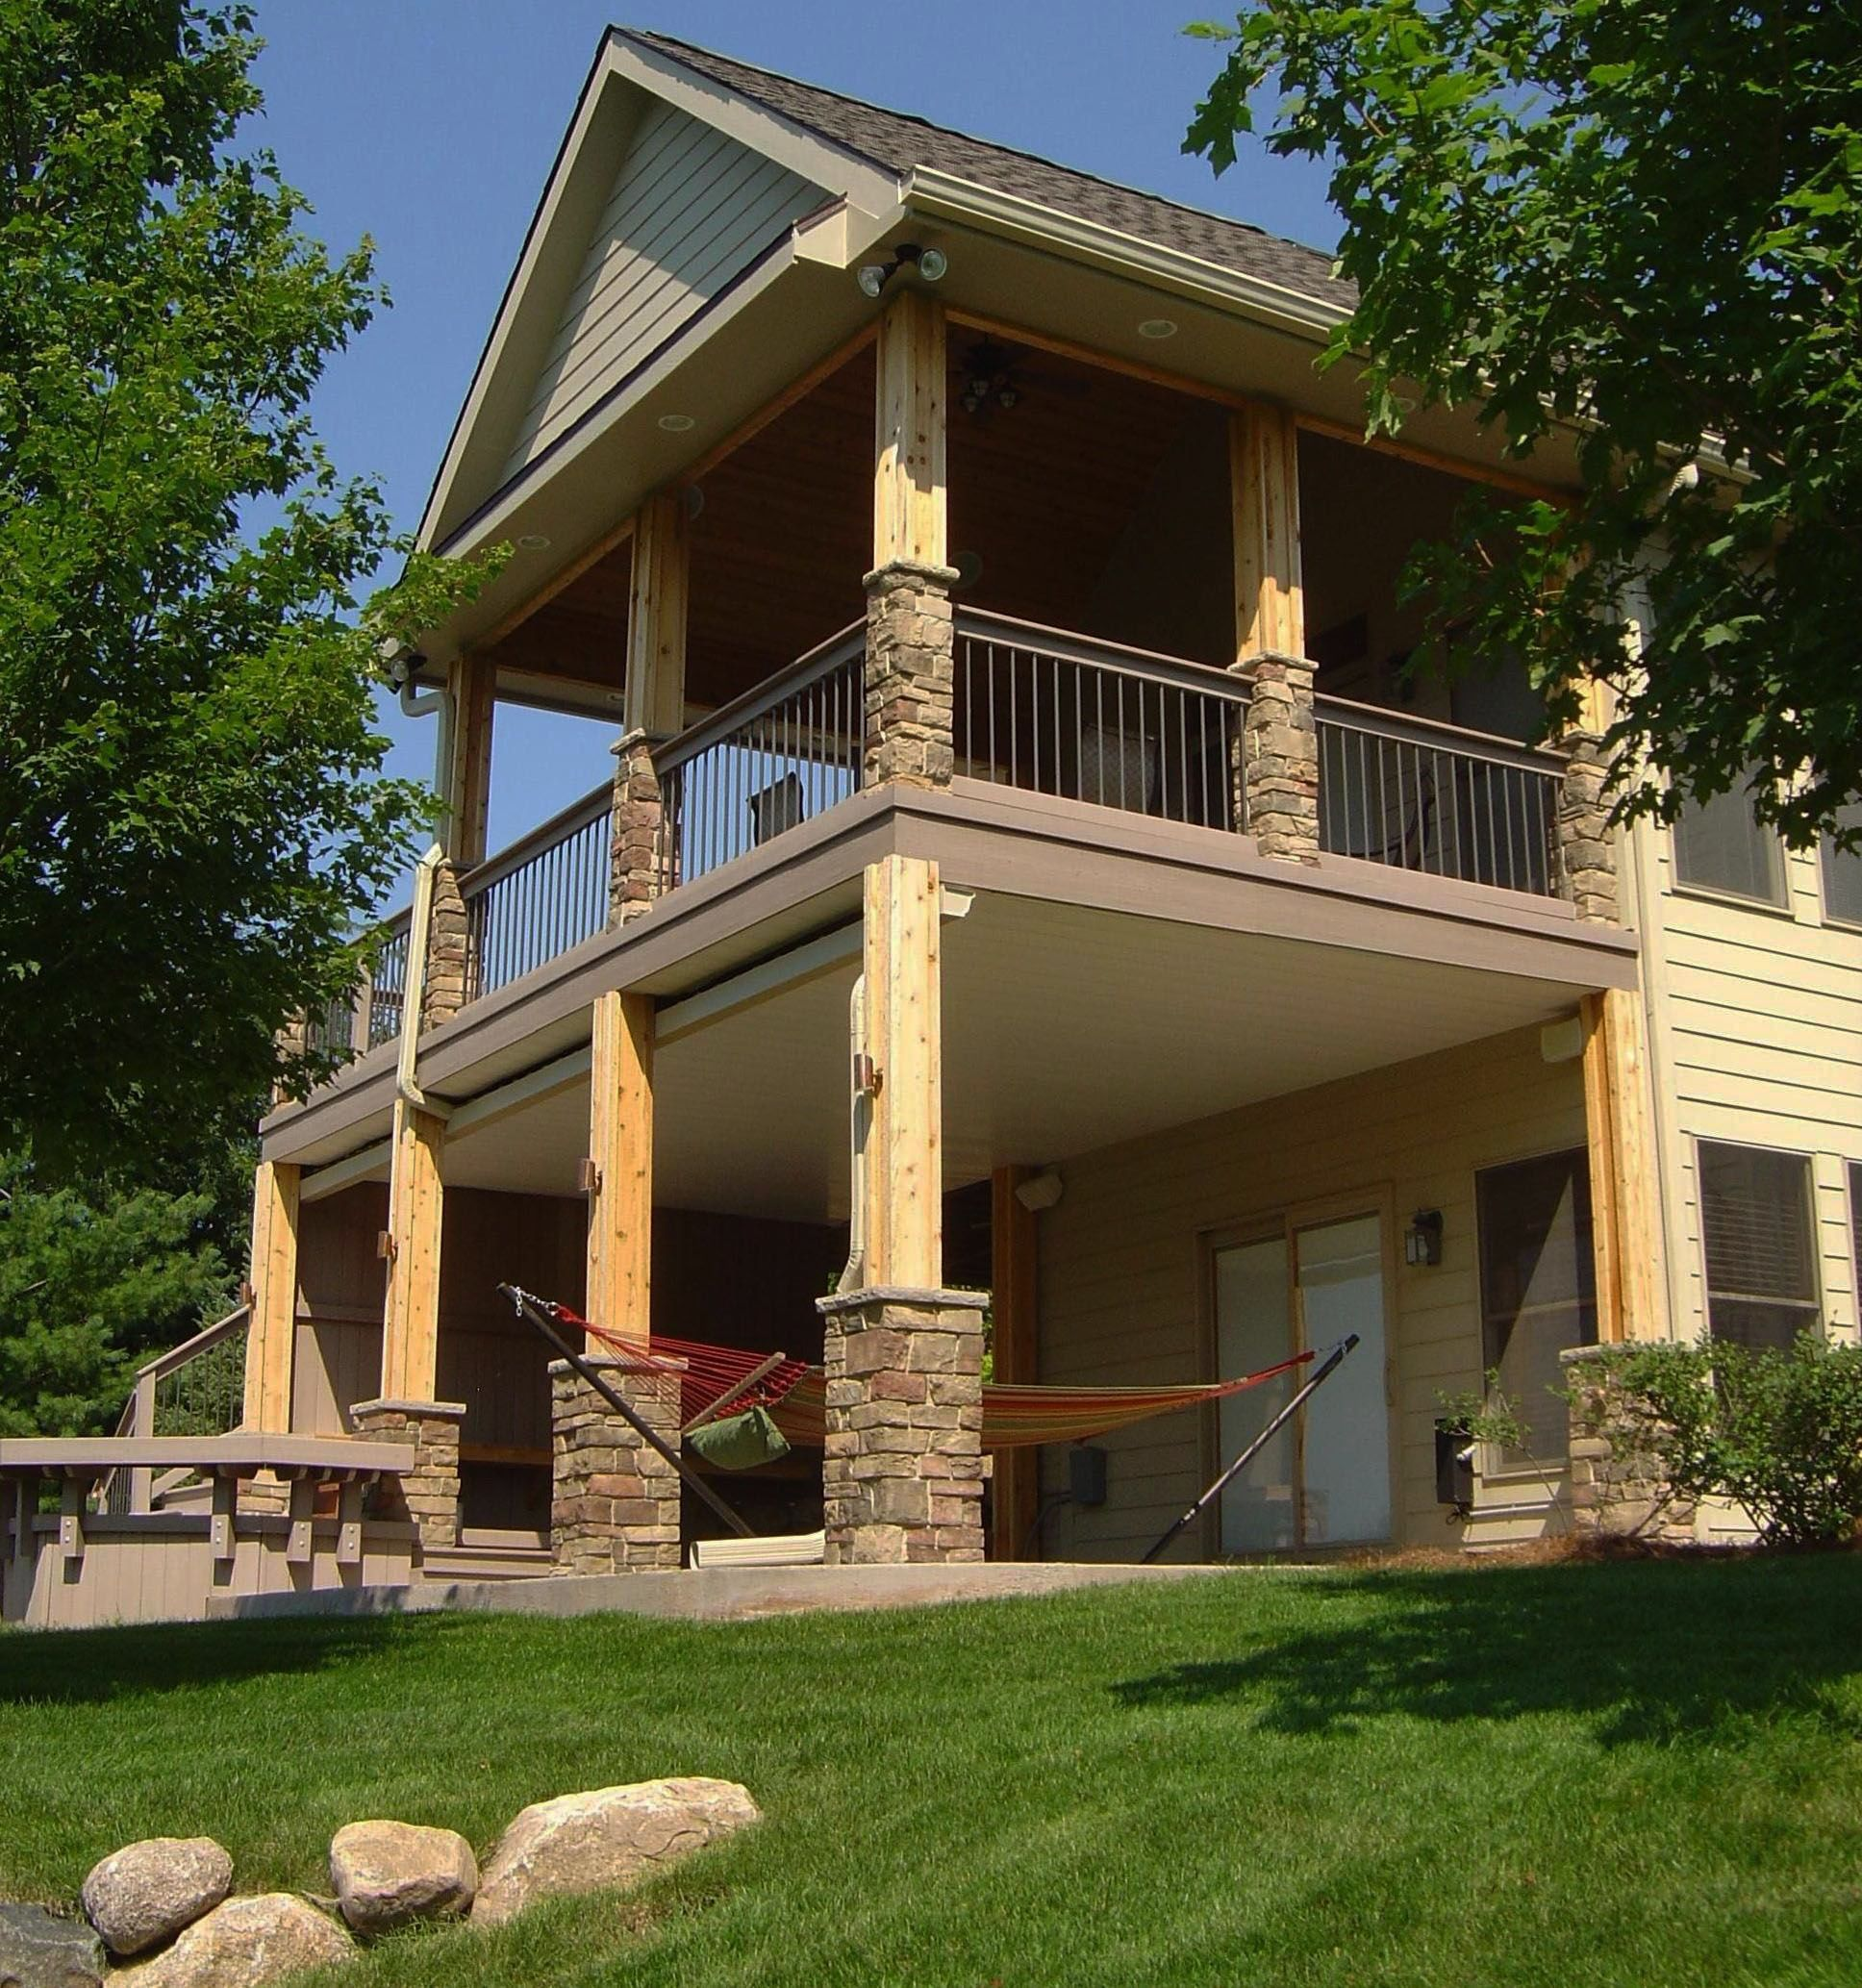 Veranda Tips For Every Residence Style Outdoor Remodel Decks Backyard Outdoor Living Space Patio